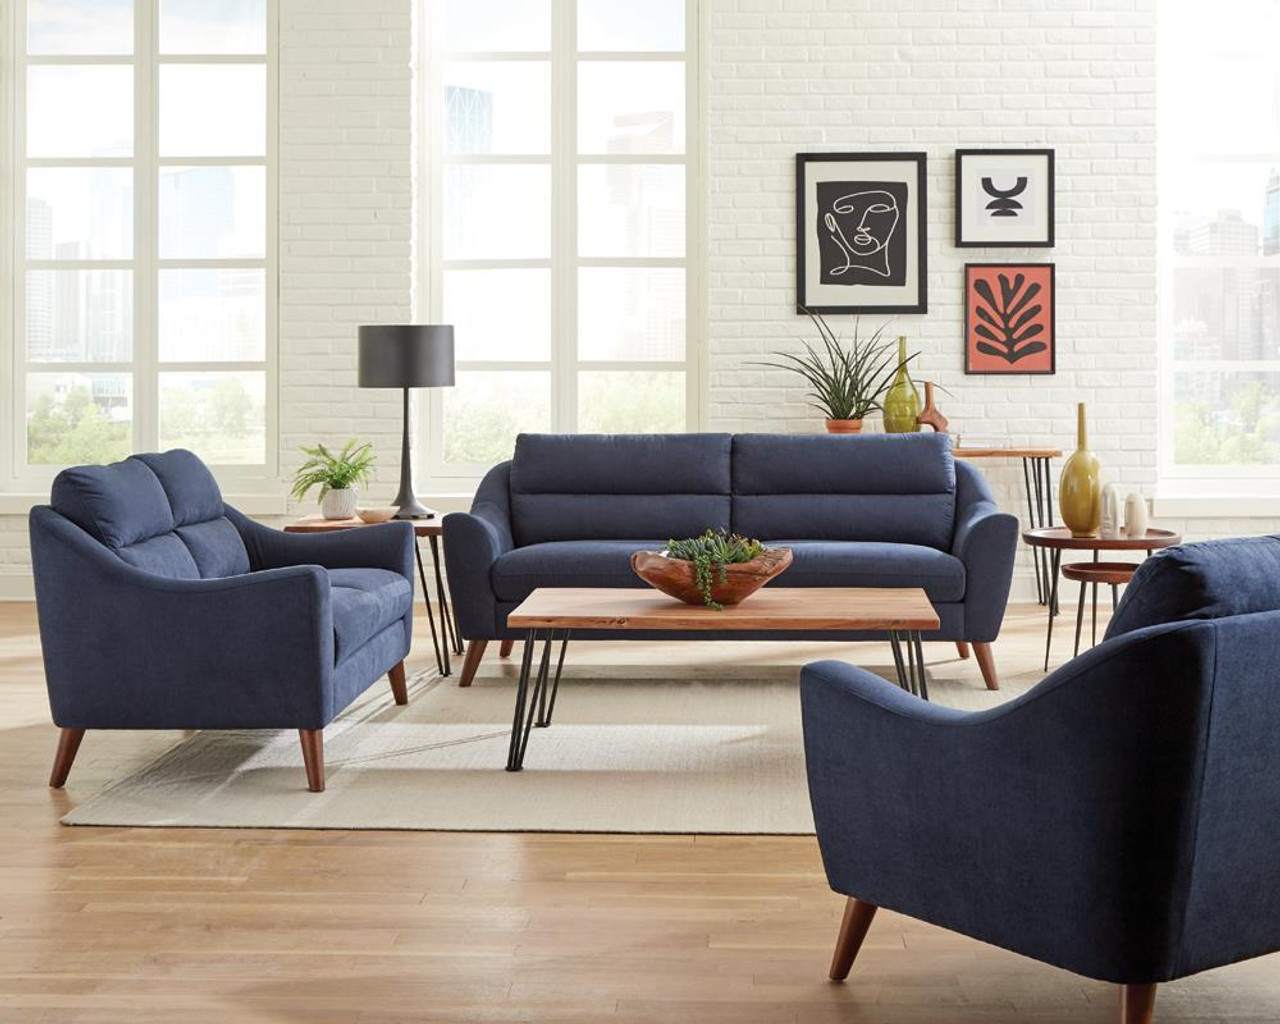 Navy Blue Sofa 509514 On Sale At Montana S Home Furniture Serving Houston Tx